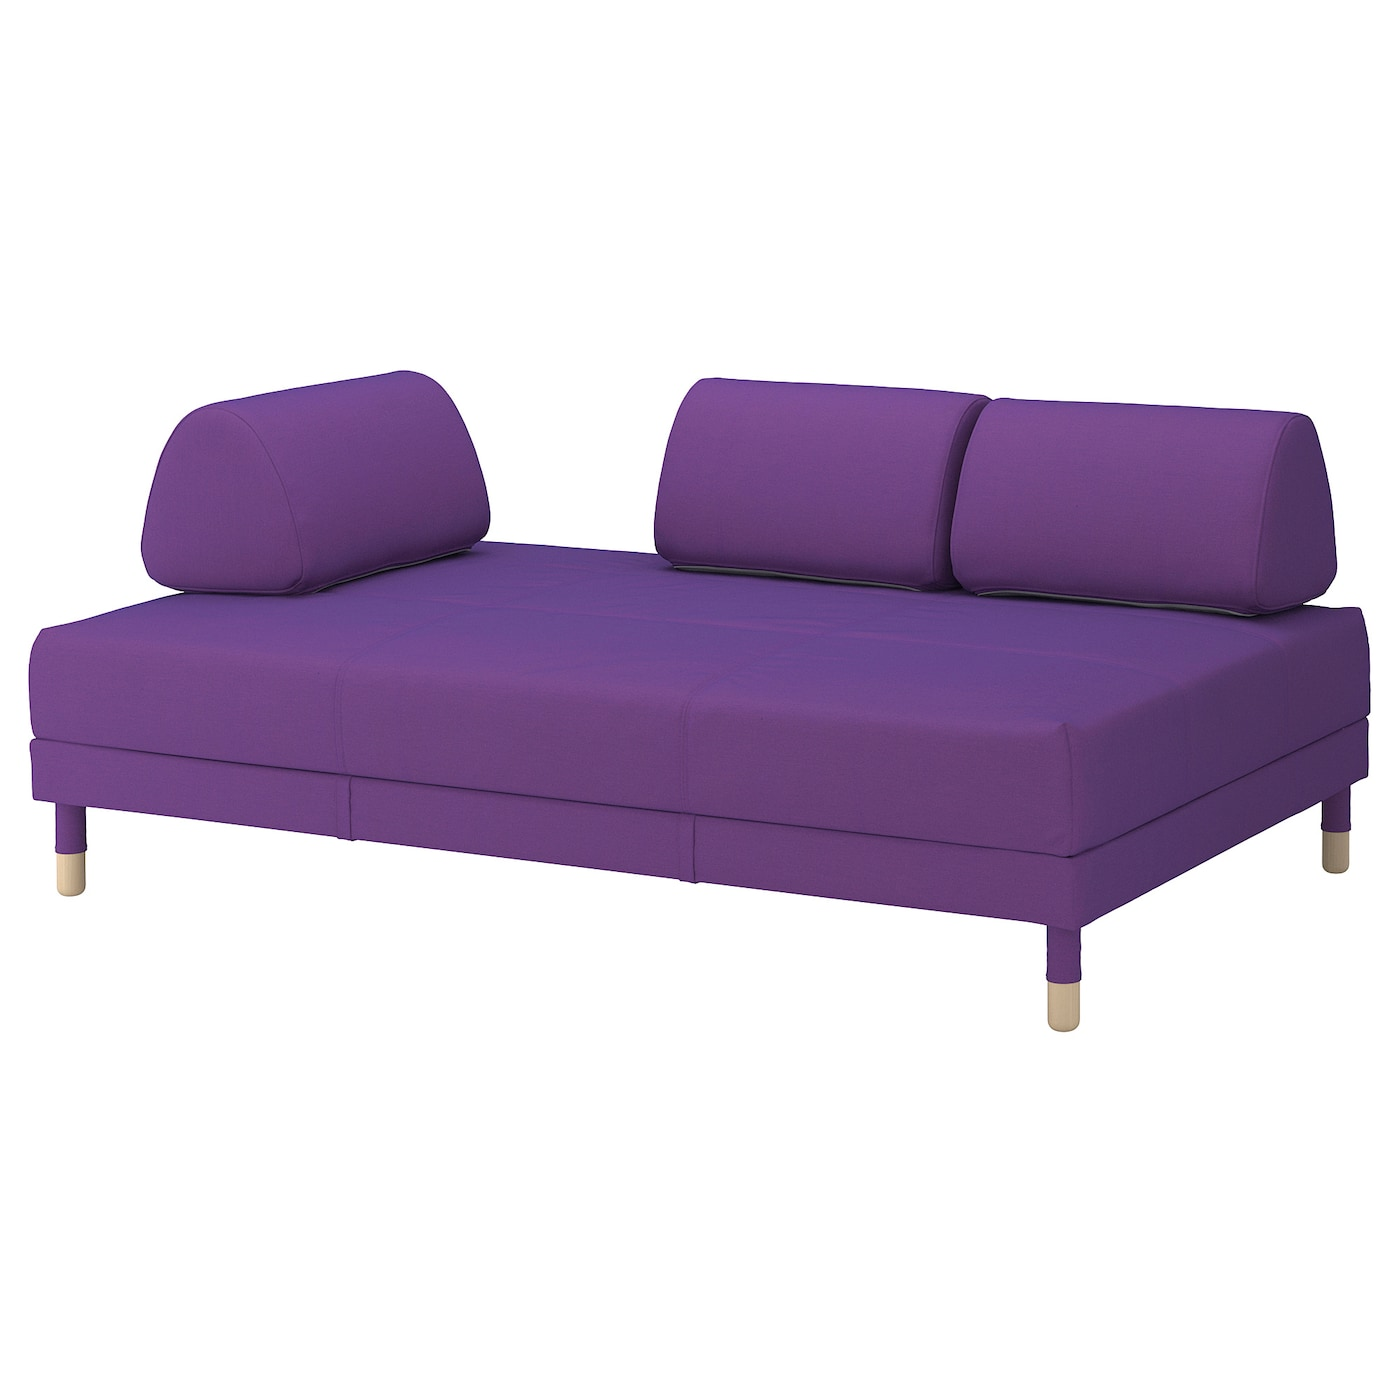 Flottebo Sleeper Sofa Vissle Purple